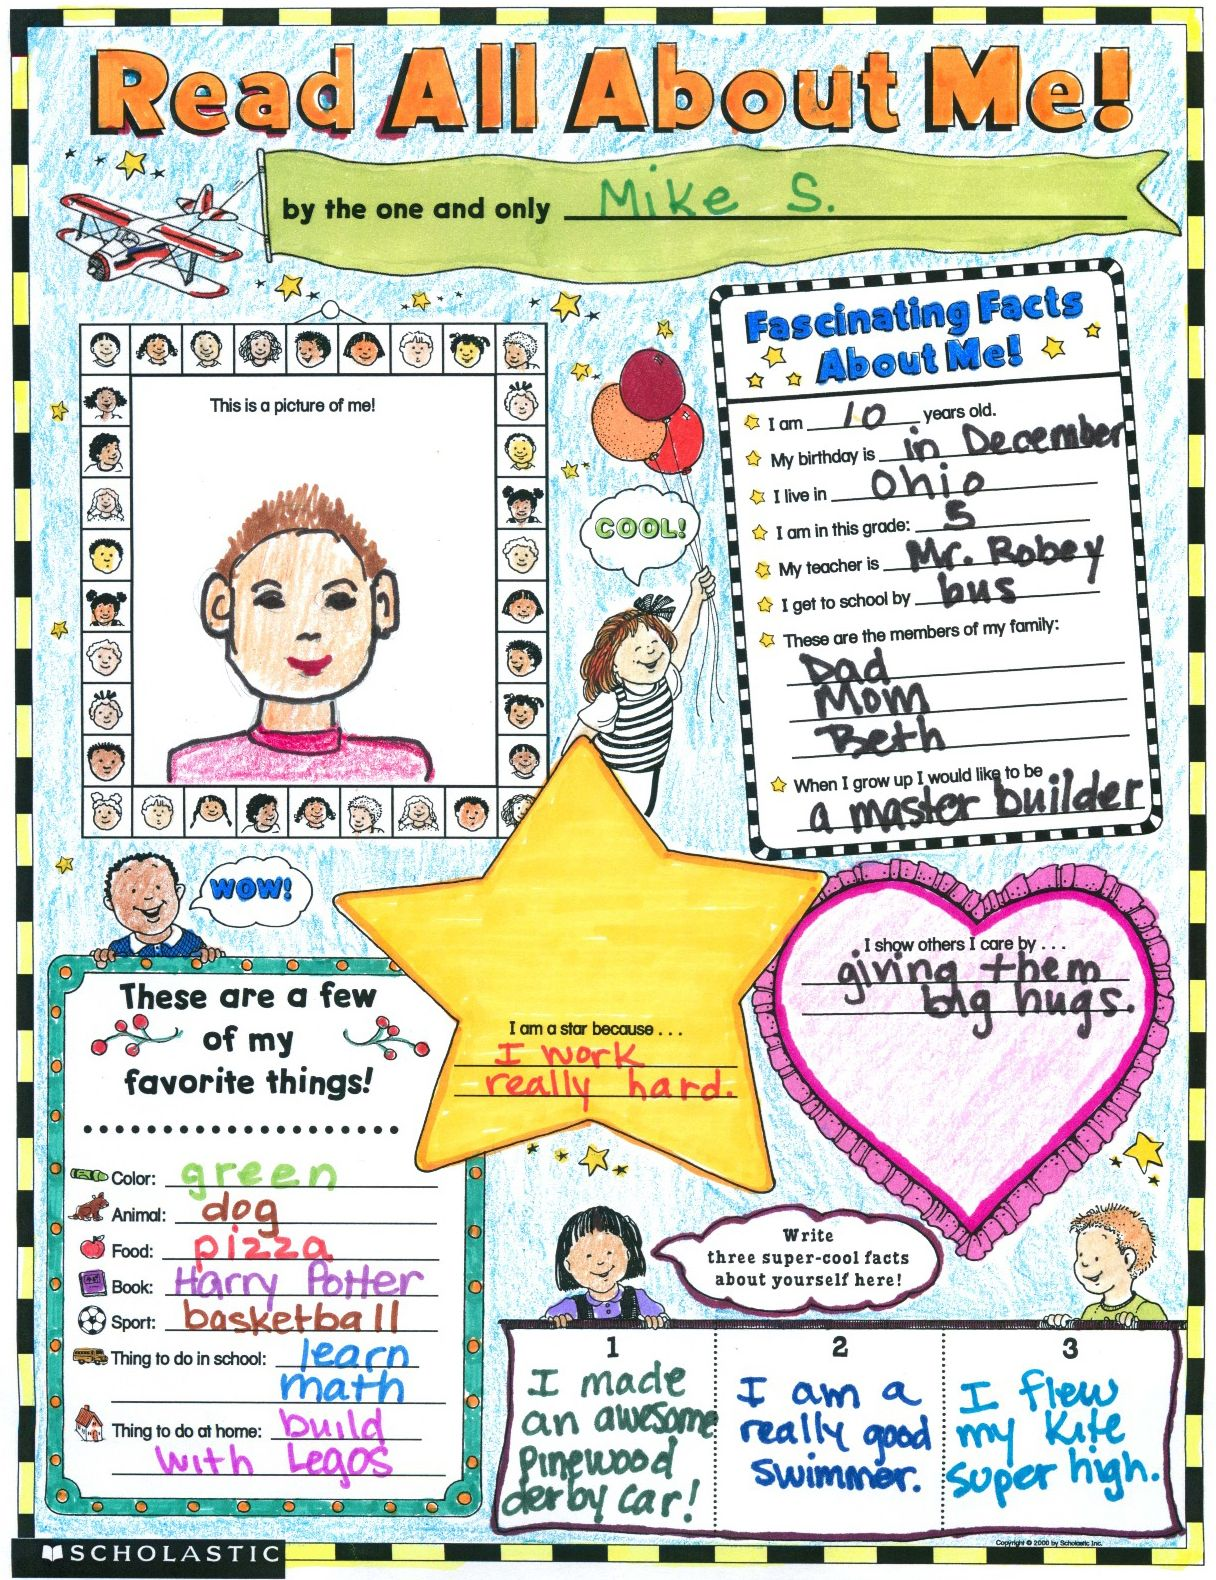 Read All About Me Poster Classroom Worksheet Allaboutmeactivities Allaboutmeposter